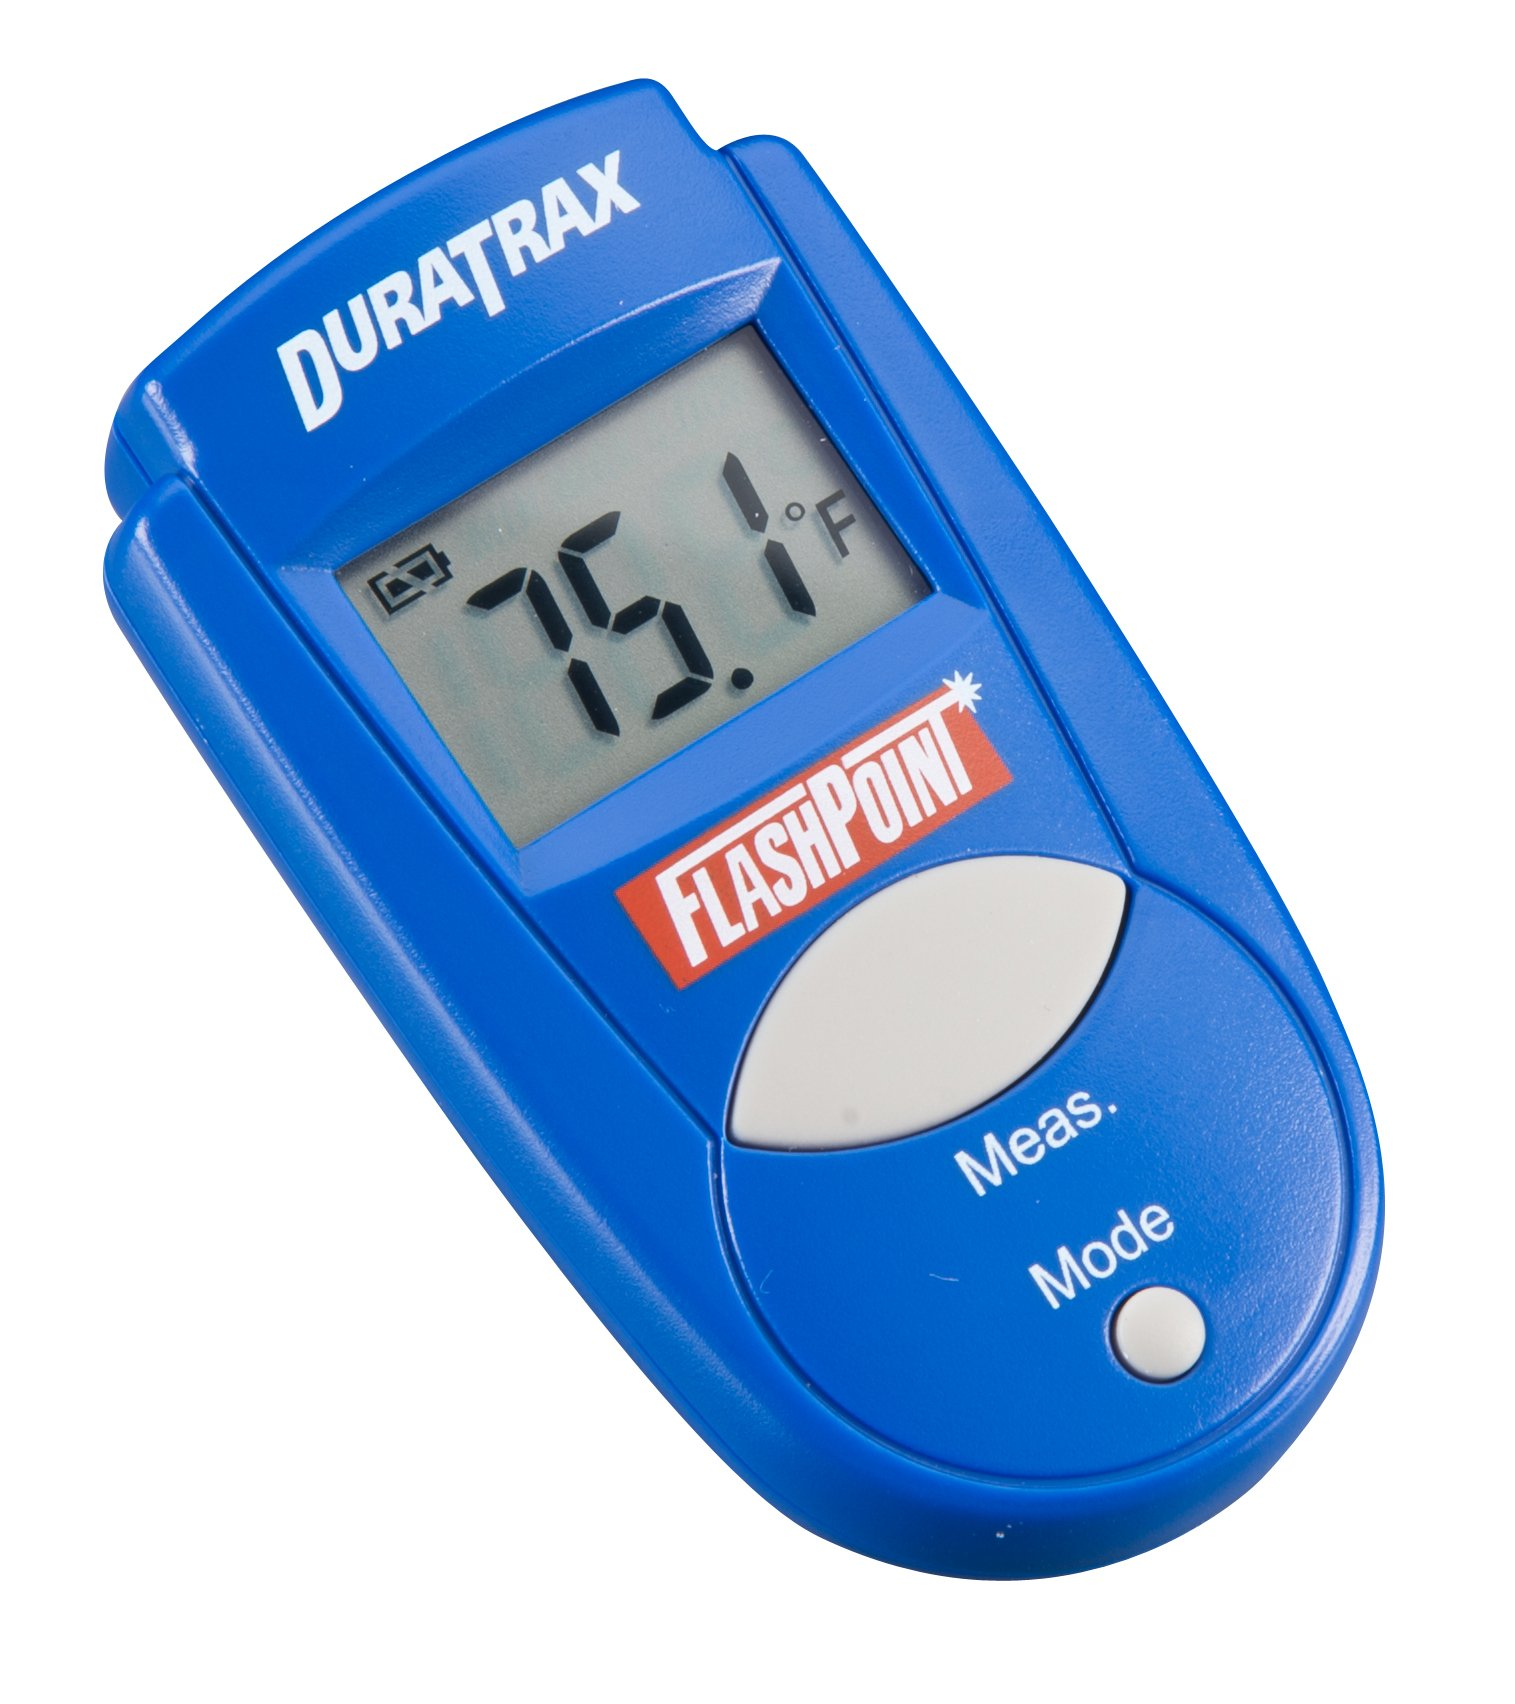 Duratrax DTXP3100 Flashpoint Infrared Temperature Gauge by Duratrax